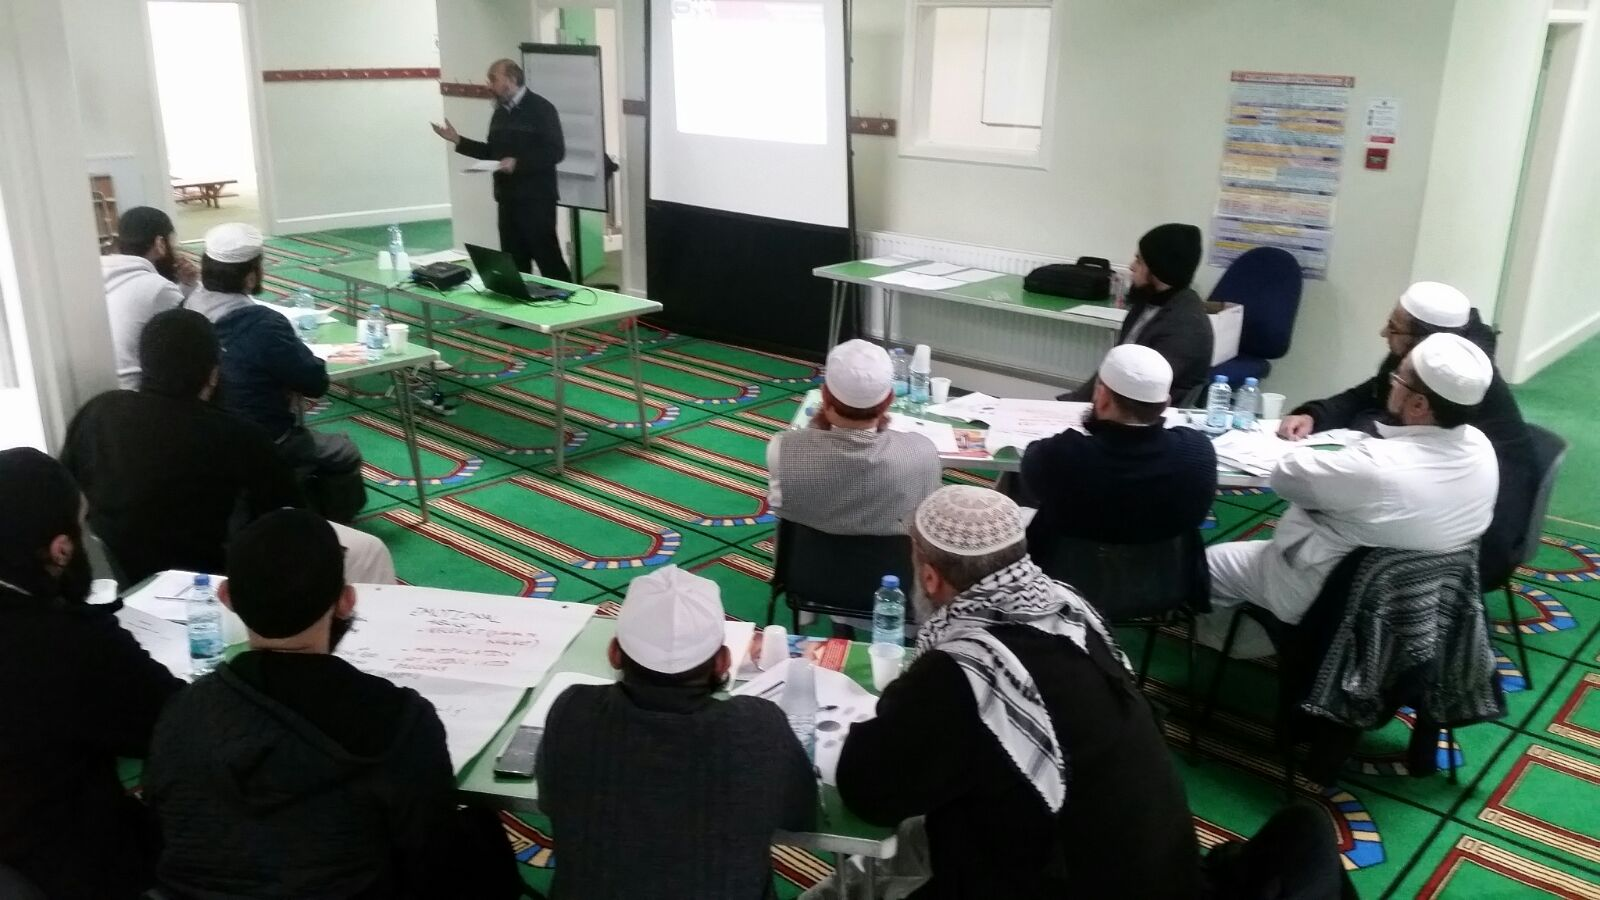 Level 1 Safeguarding Training at Masjid al Farouq in Walsall